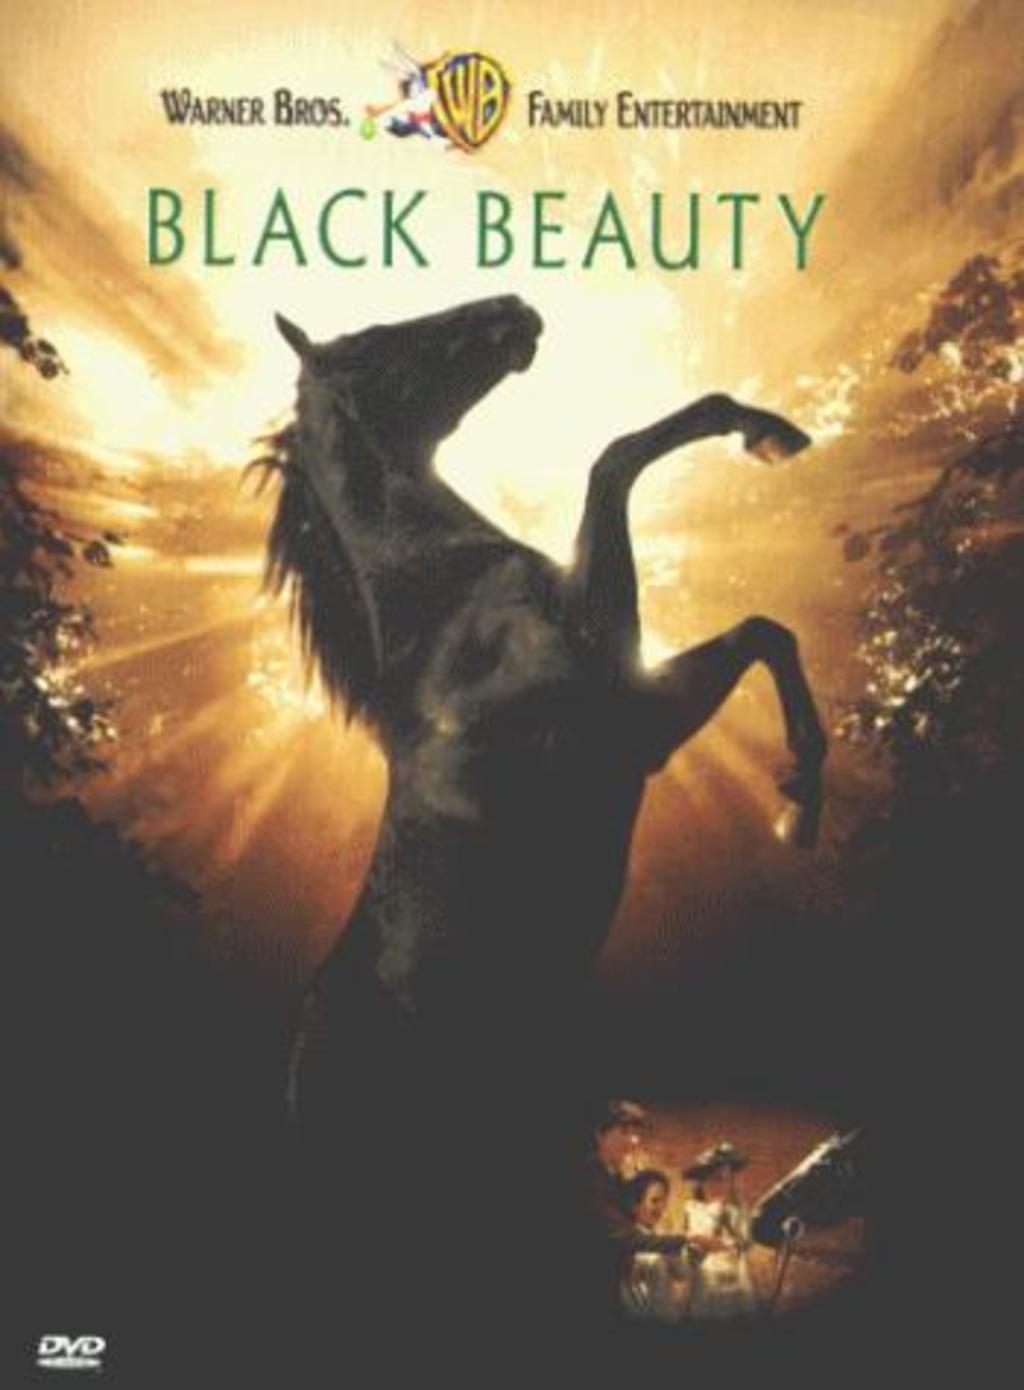 Image result for Black beauty movie